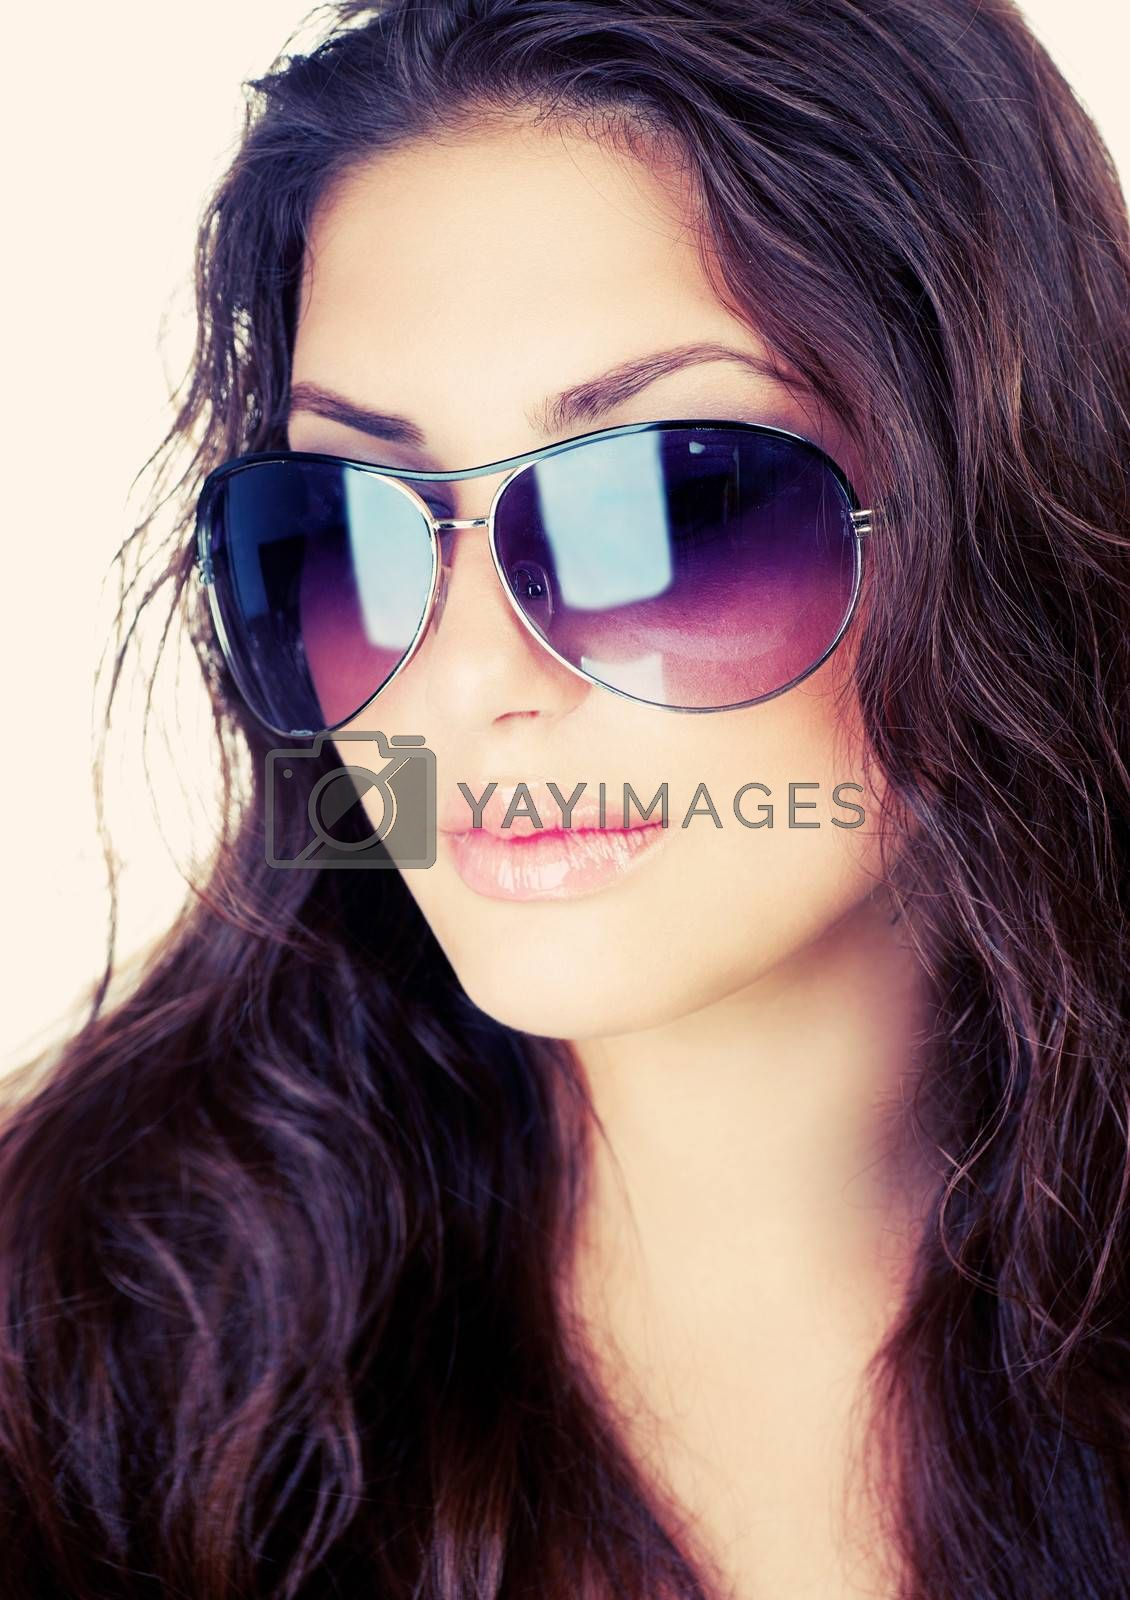 Beauty Stylish Fashion Model Girl wearing Sunglasses